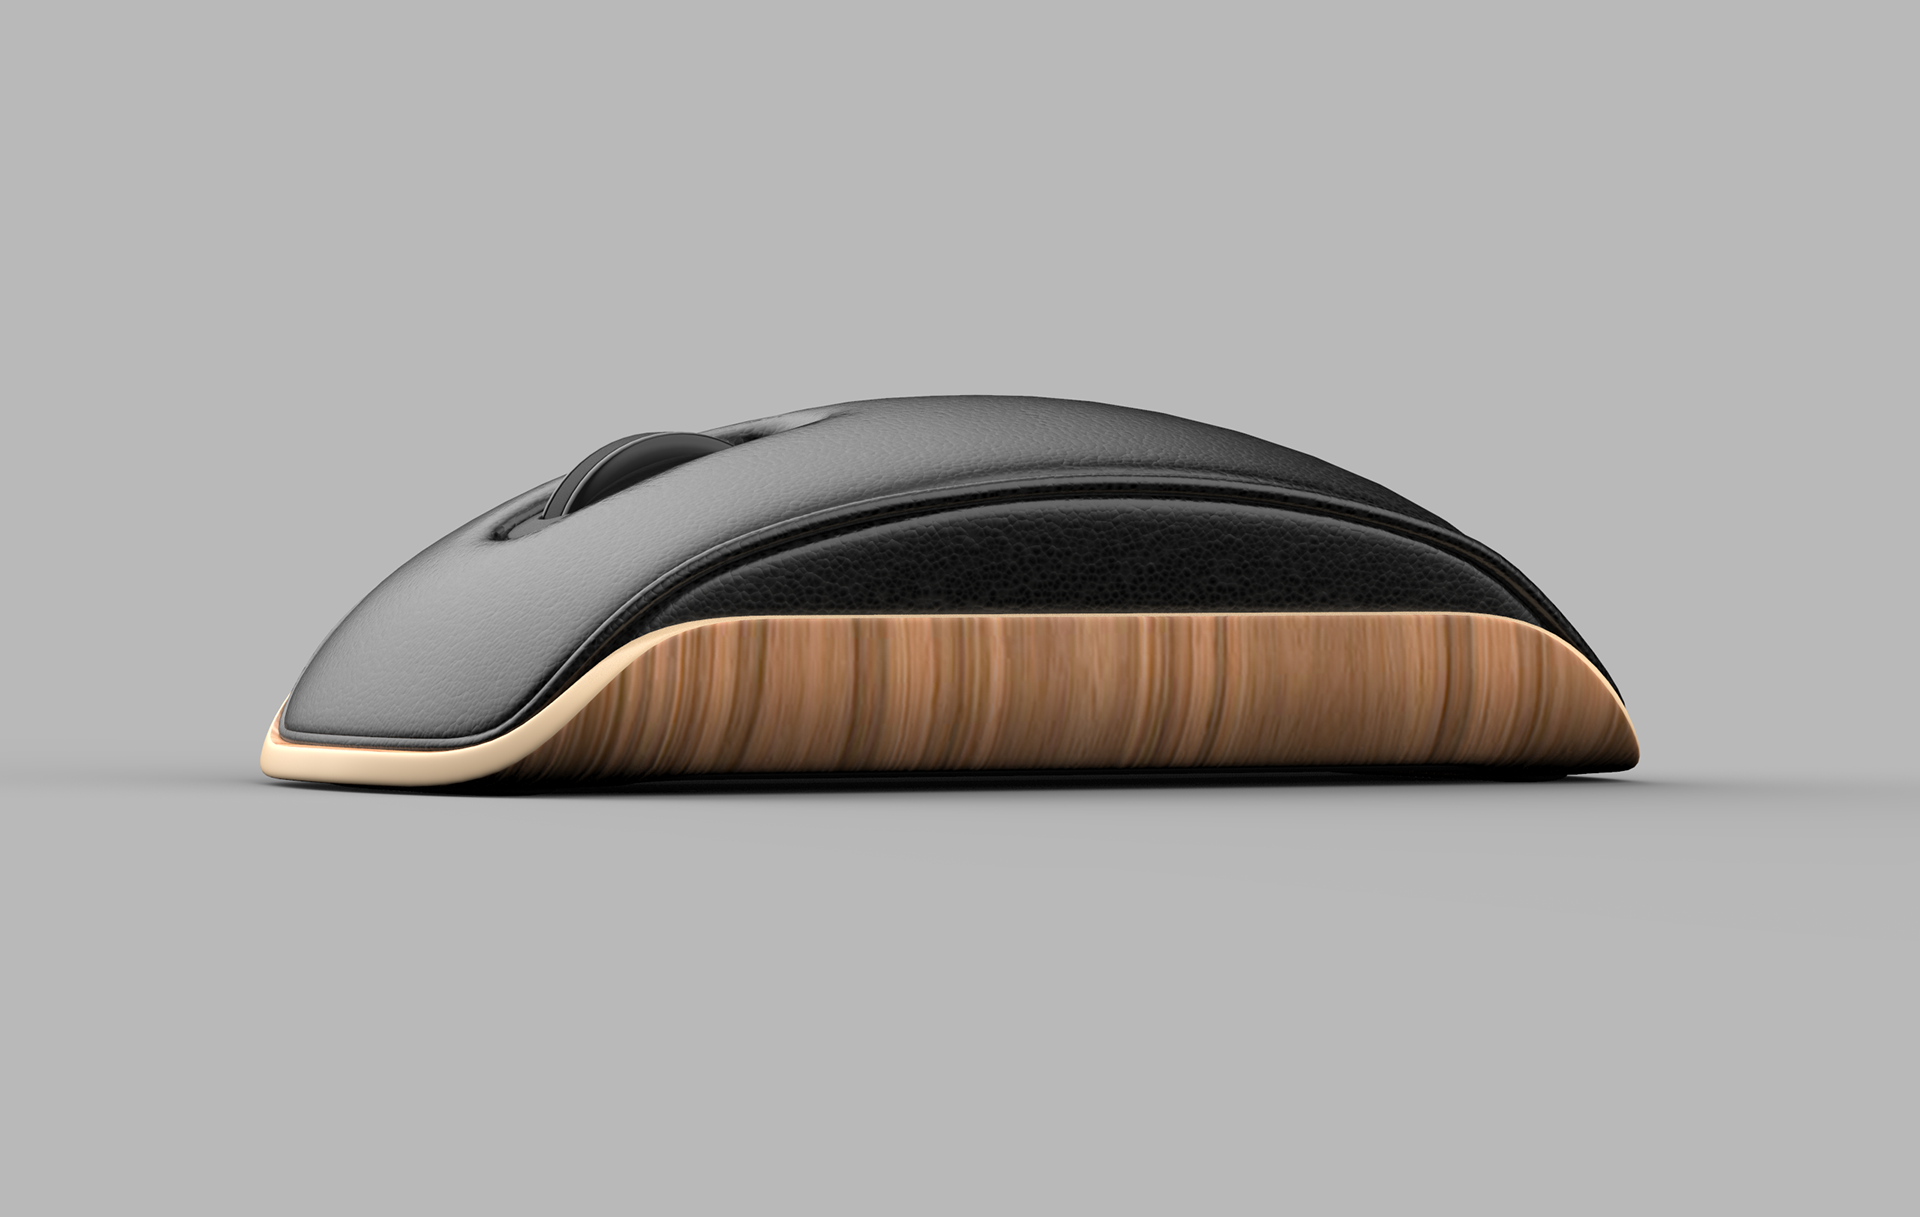 The Lounge Mouse created by industrial designer Shane Chen